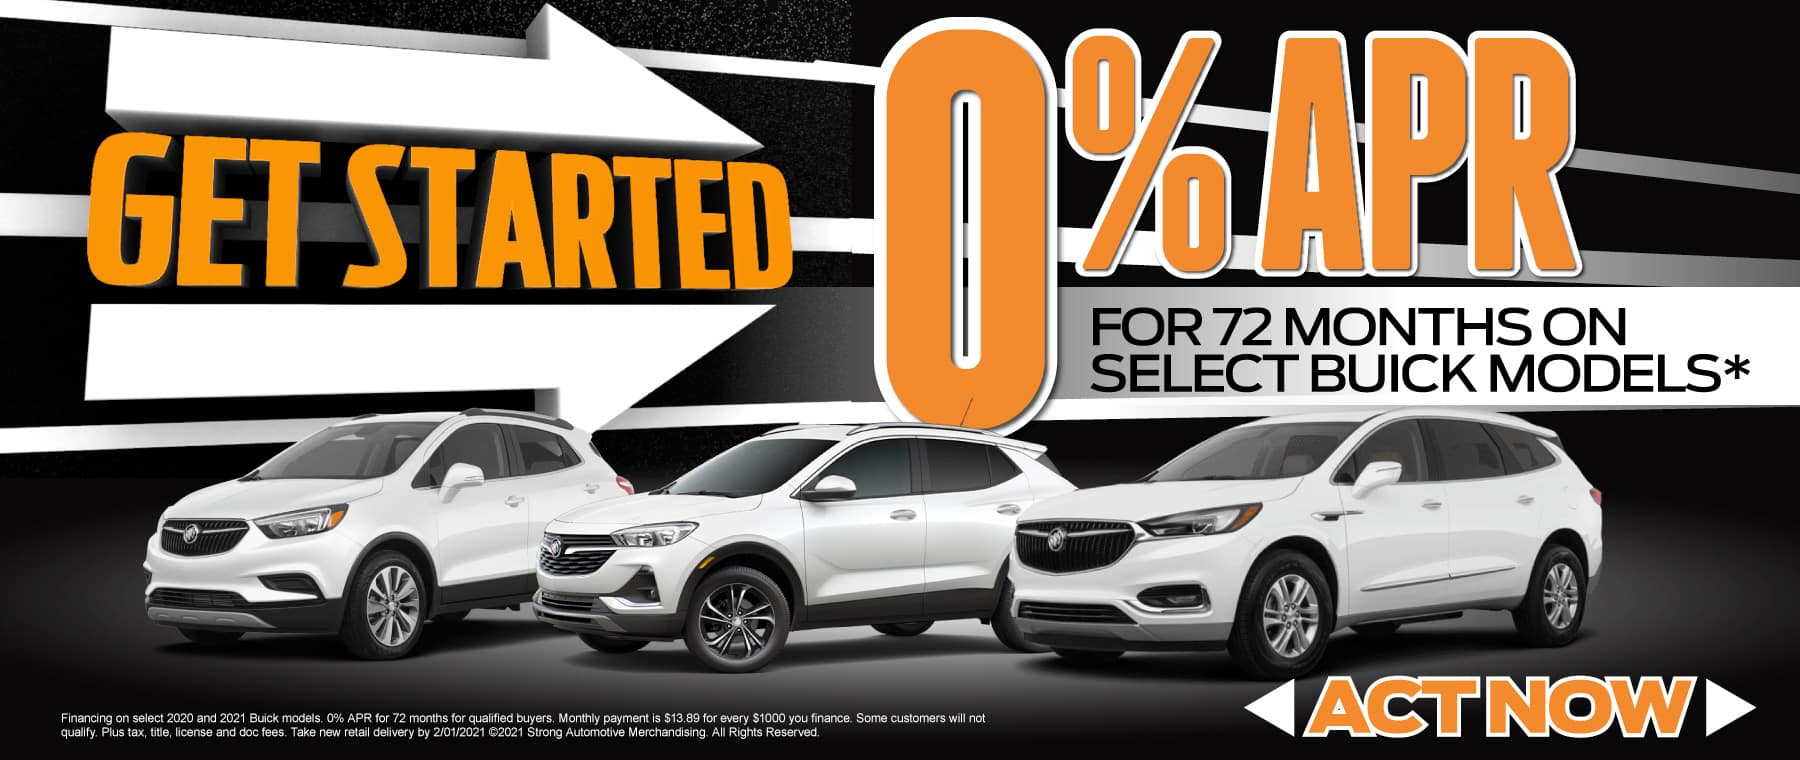 0% APR on Select Buick models - Act now